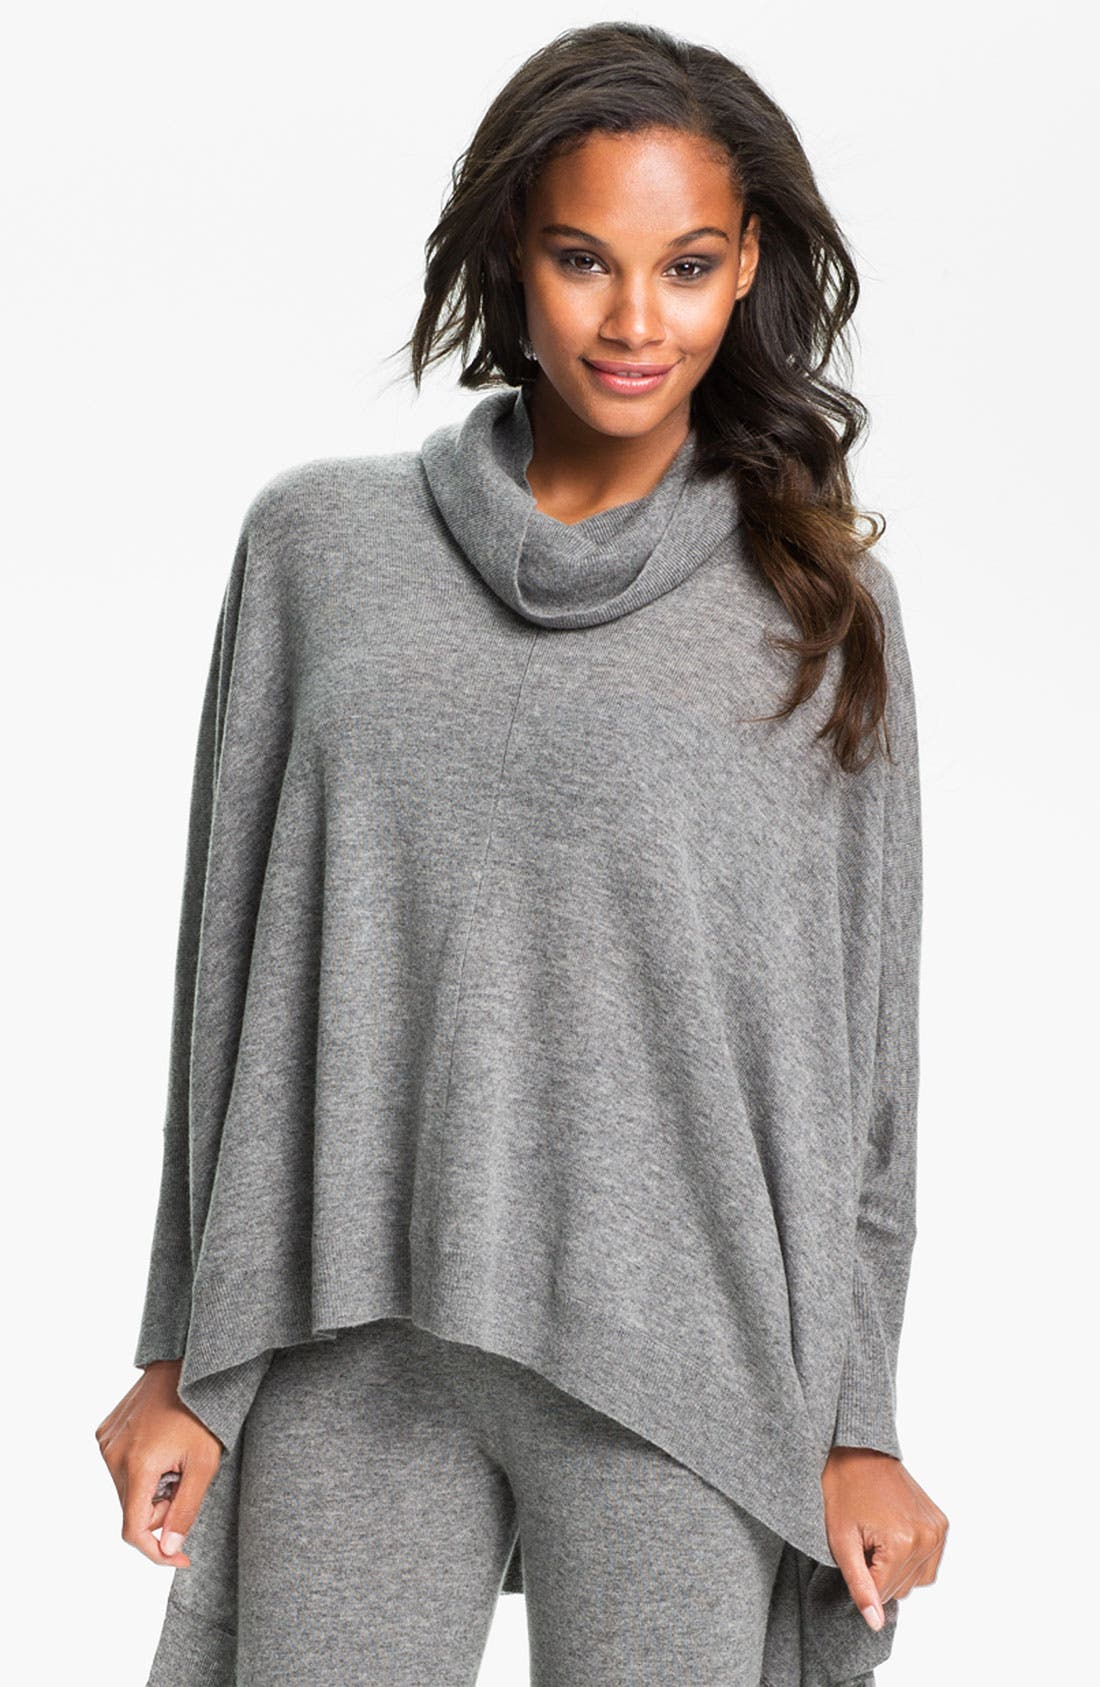 Alternate Image 1 Selected - Donna Karan 'Cozy' Sweater Knit Poncho